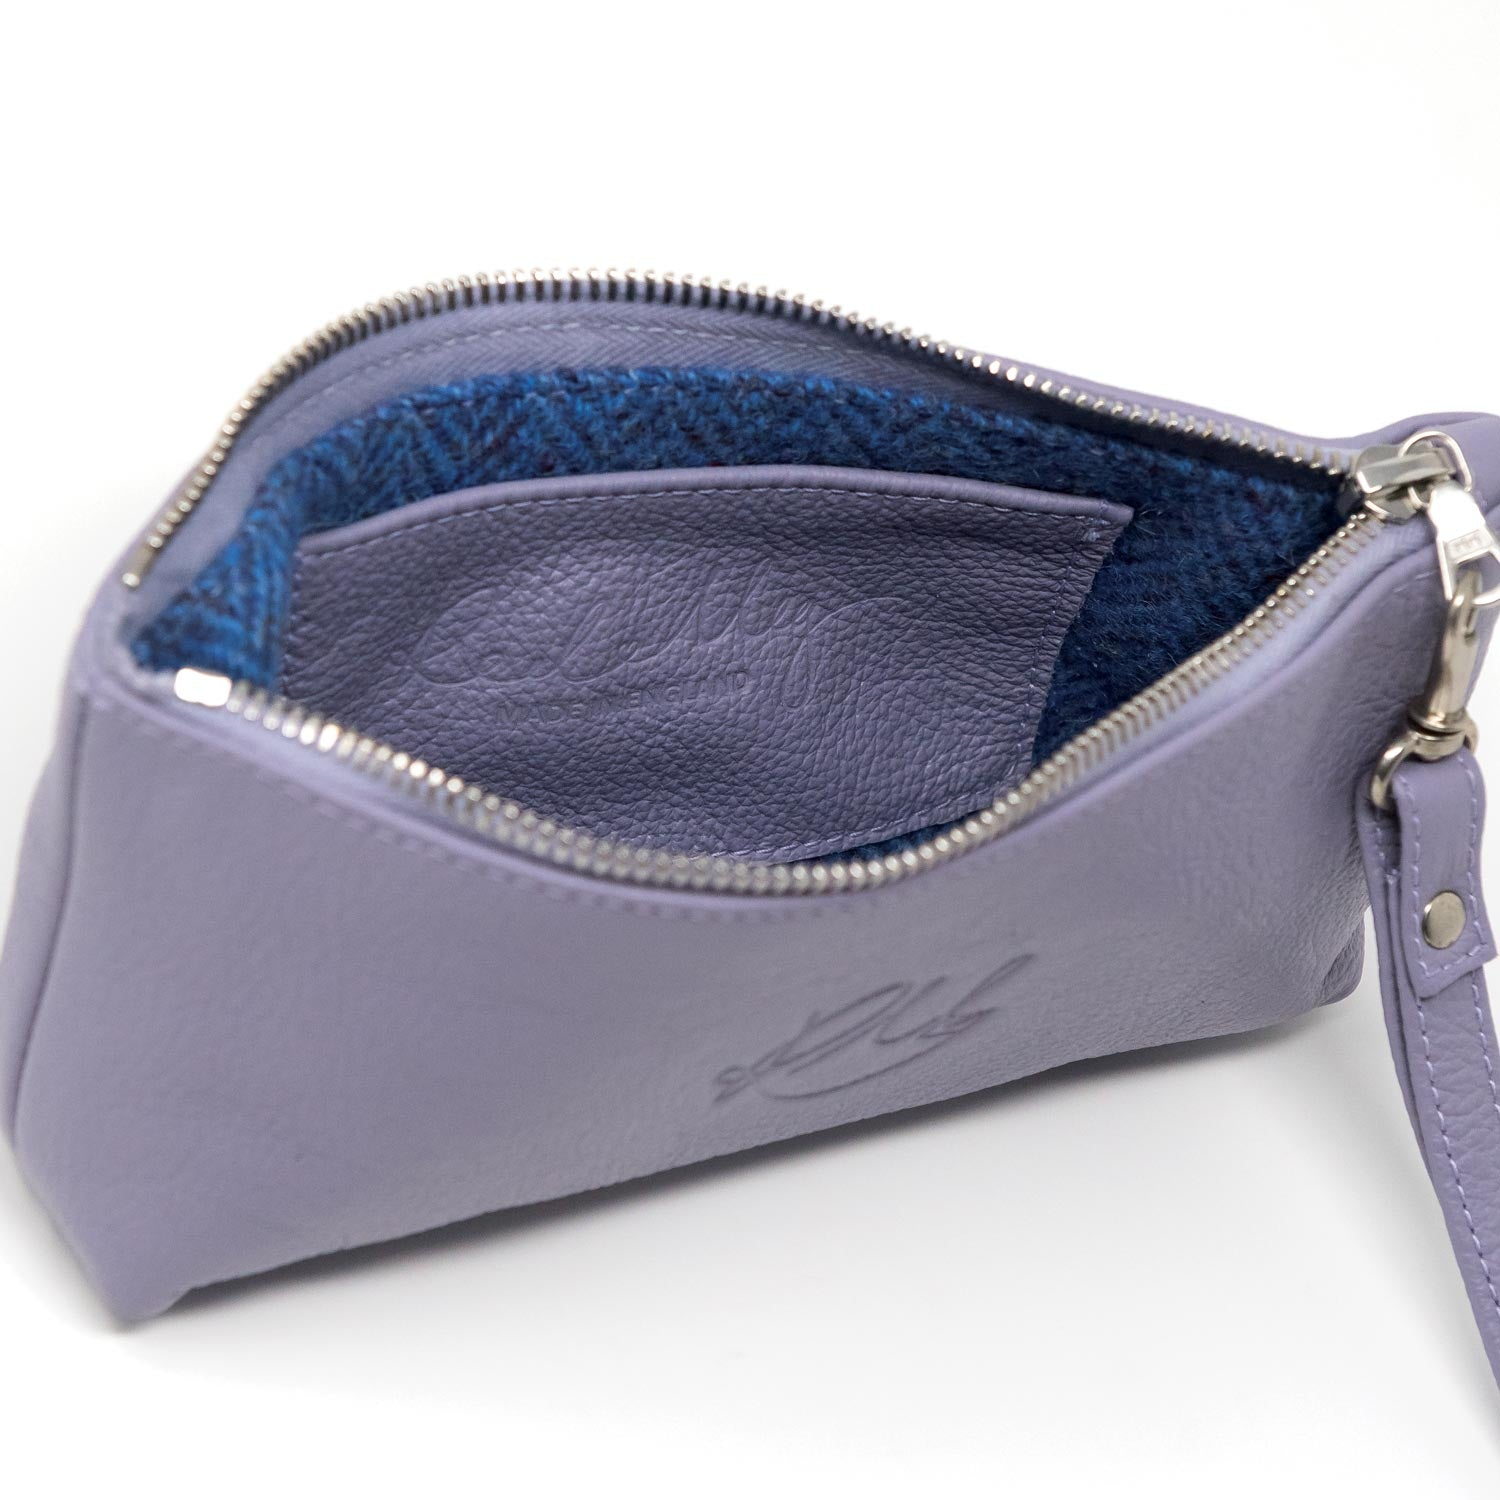 Poppy Large leather clutch bag - Lilac moto